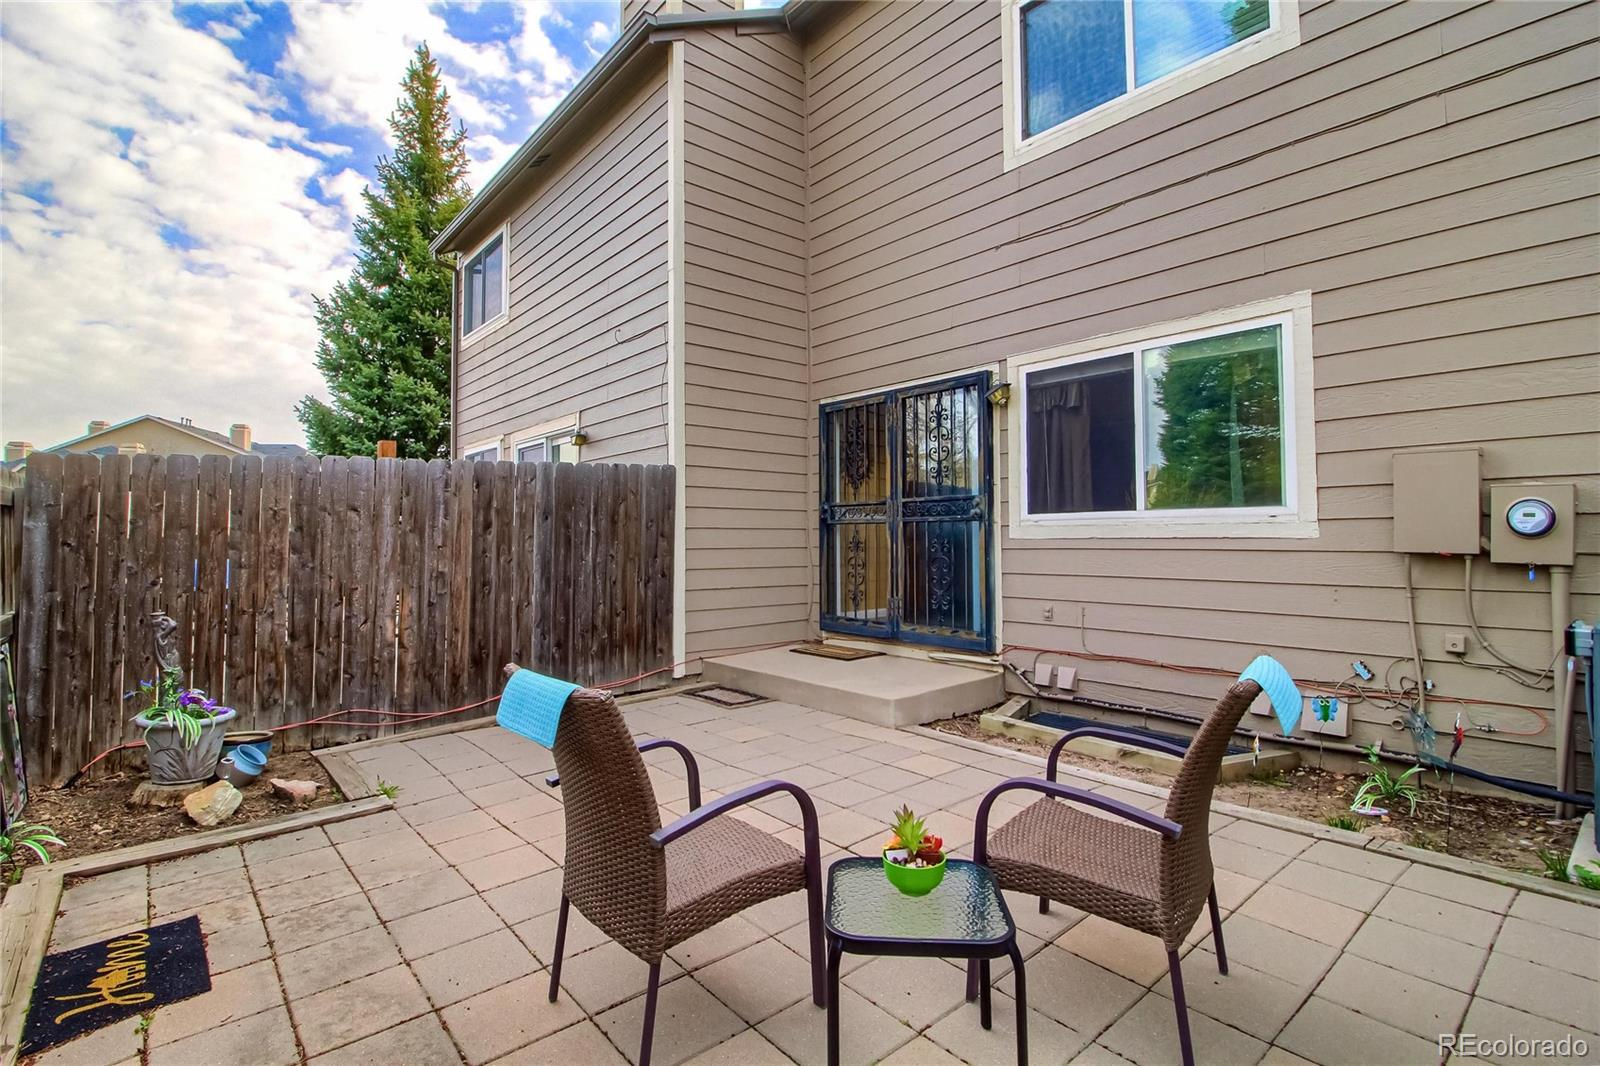 MLS# 3641043 - 26 - 3510 S Telluride Circle #C, Aurora, CO 80013